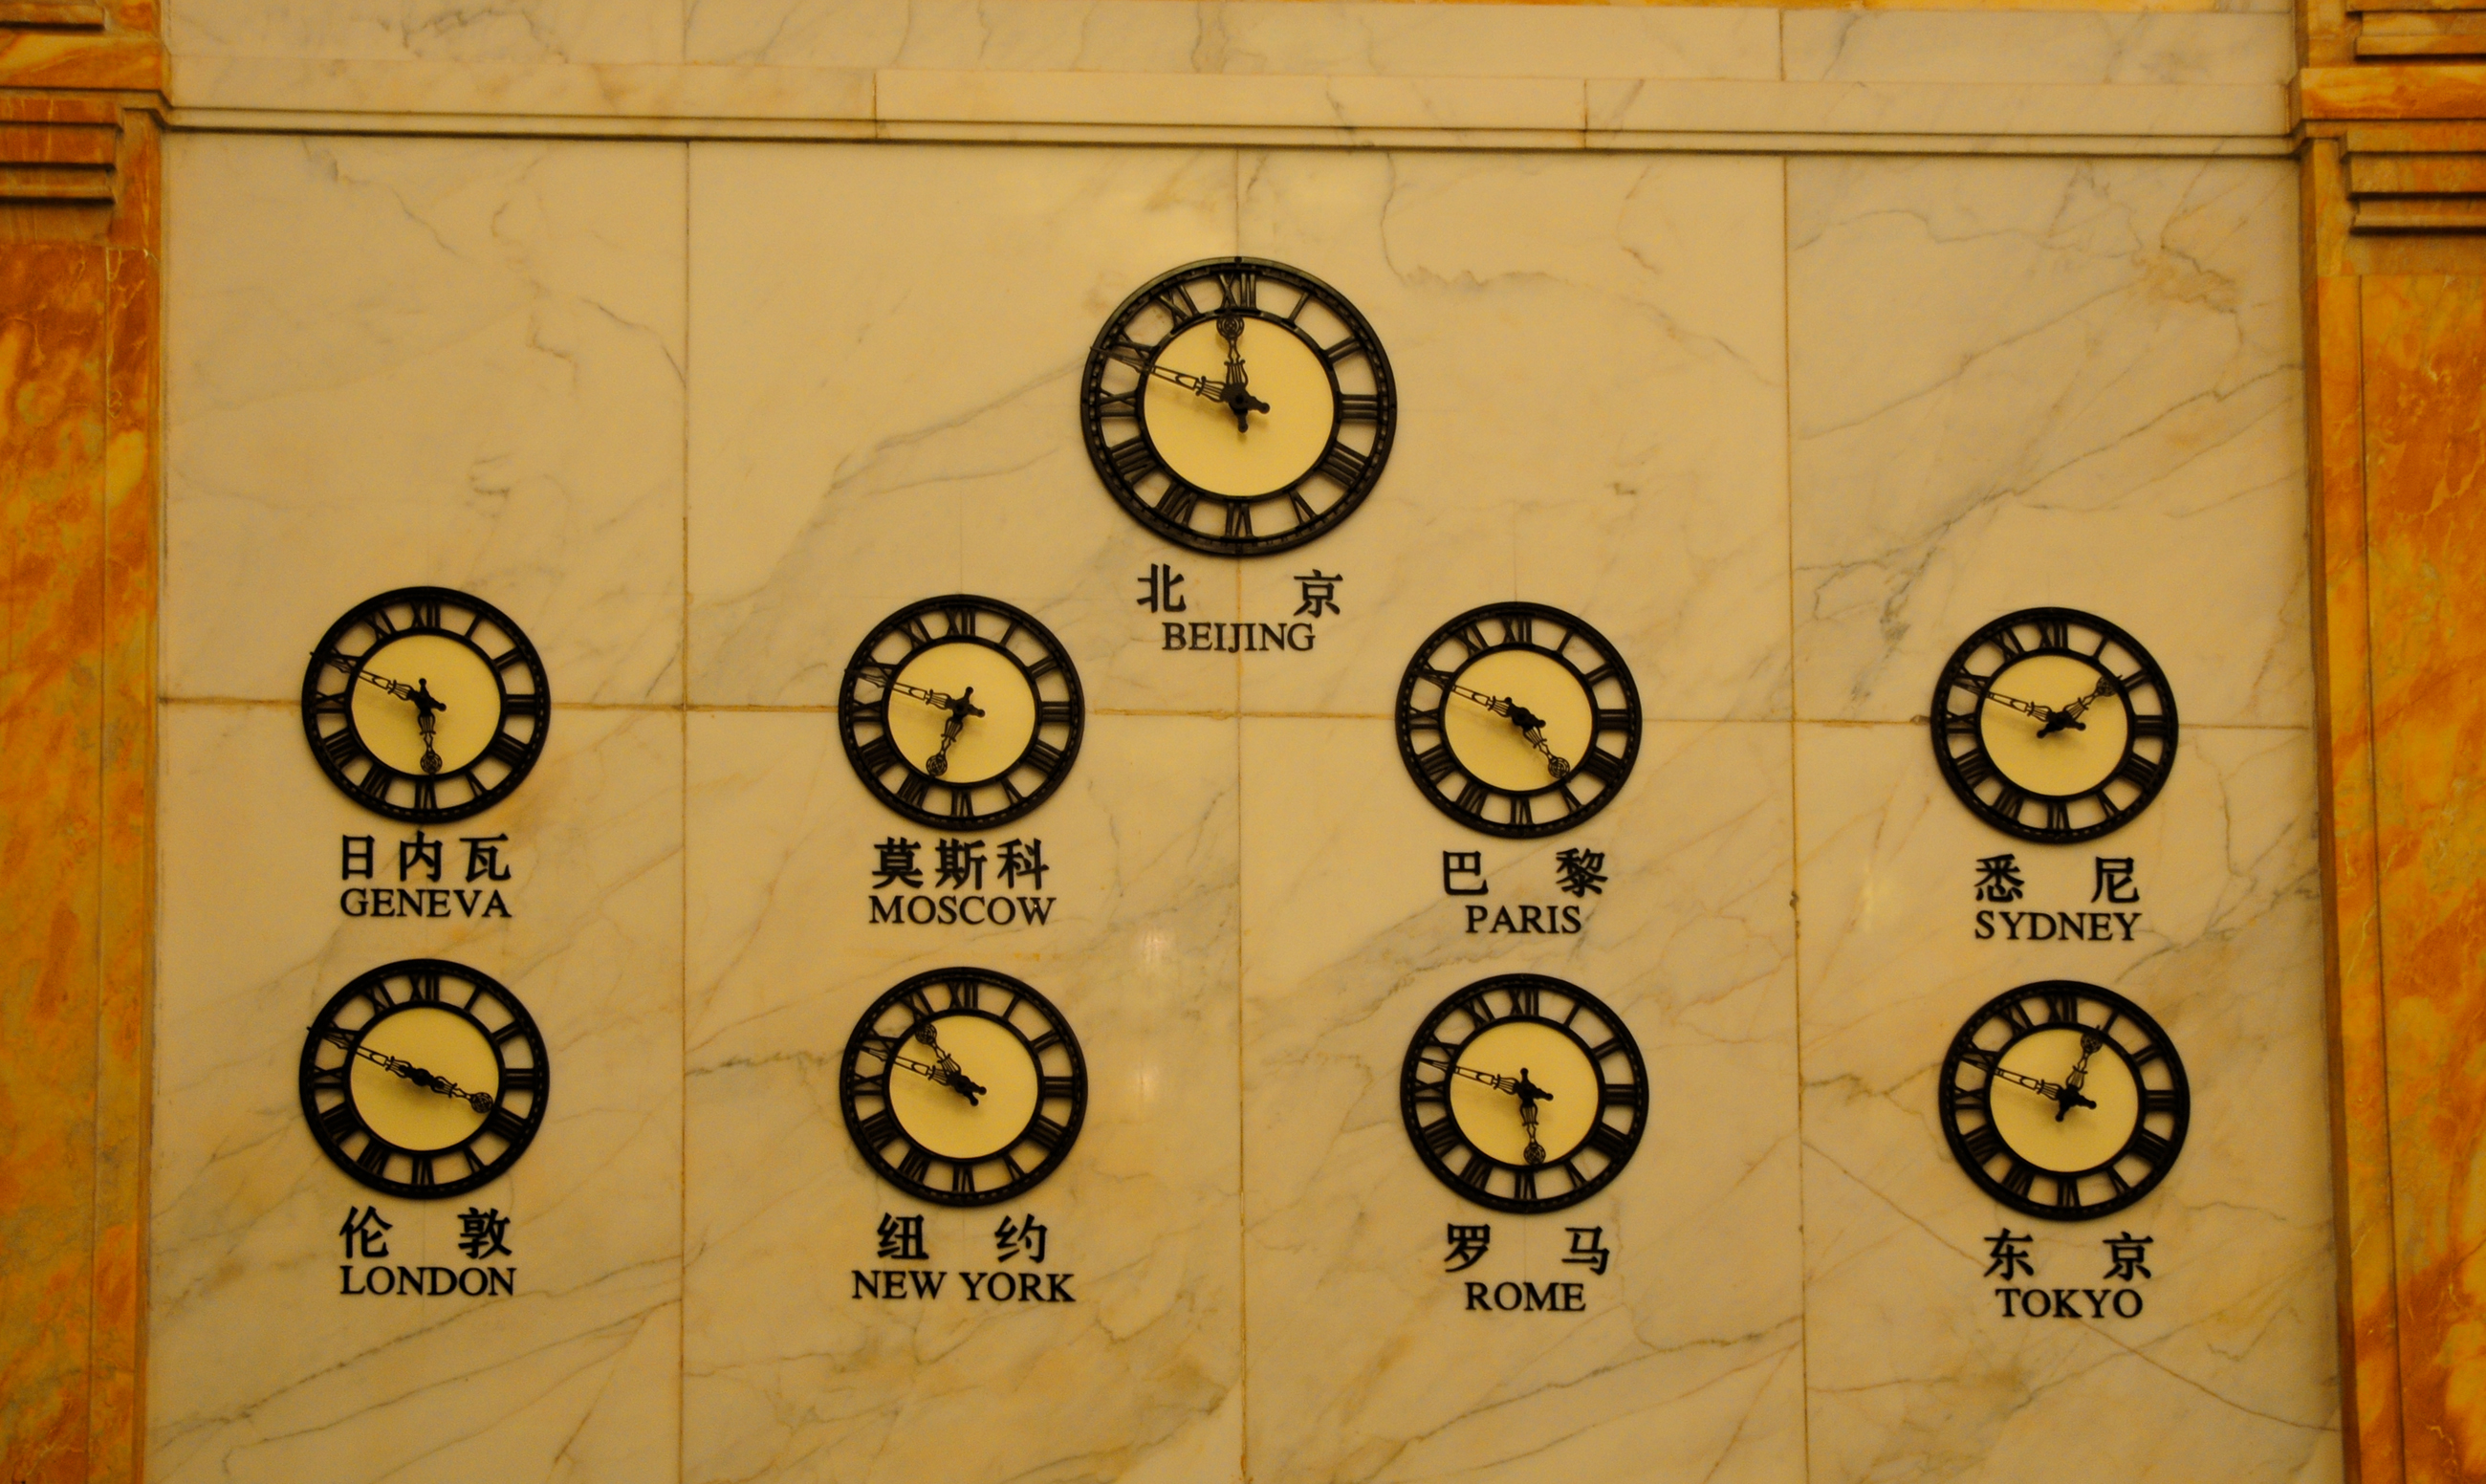 Clocks in Shanghai